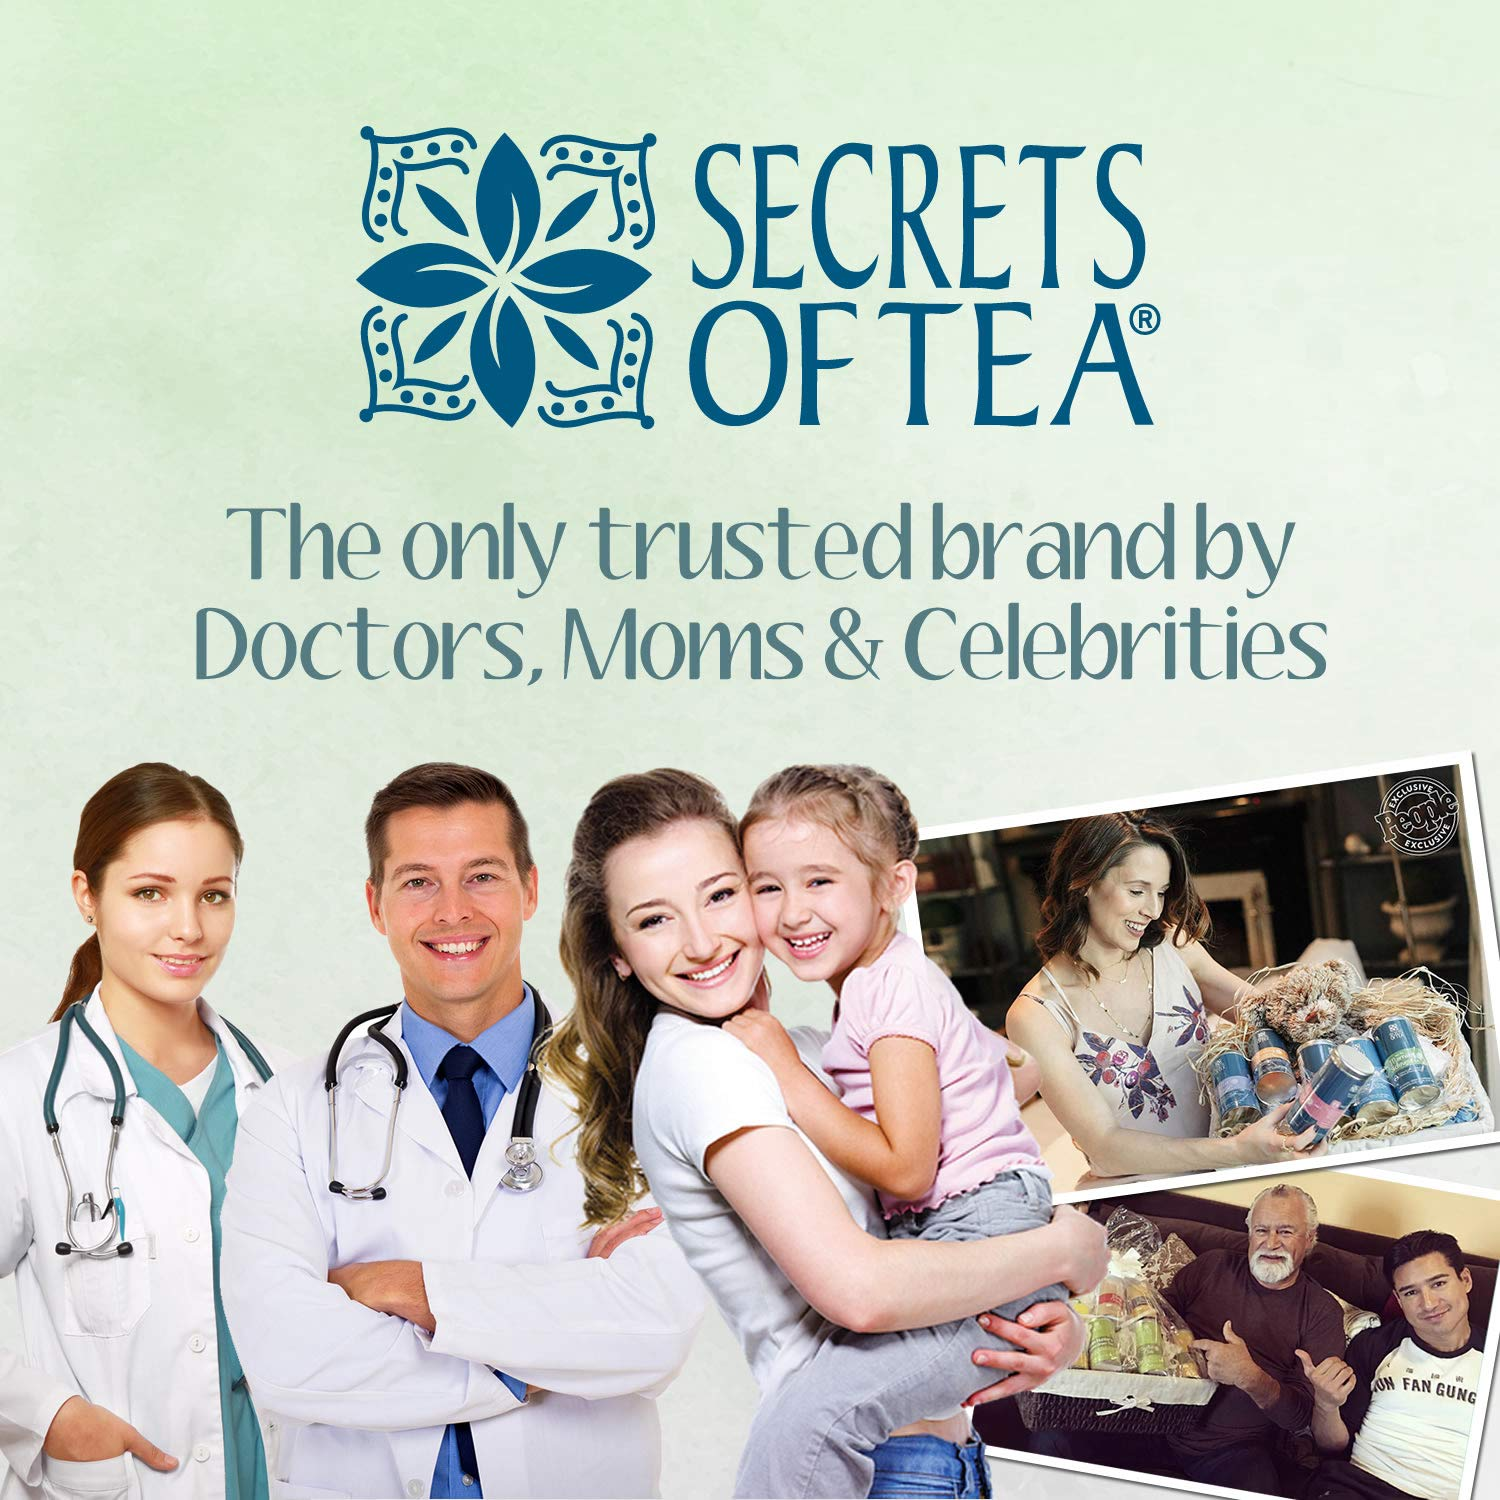 PMS Relief Tea, USDA Organic- 20 Biodegradable sachets- 40 Servings- Supports Healthy Cycle & Eases Discomfort- No Caffeine (Cinnamon)